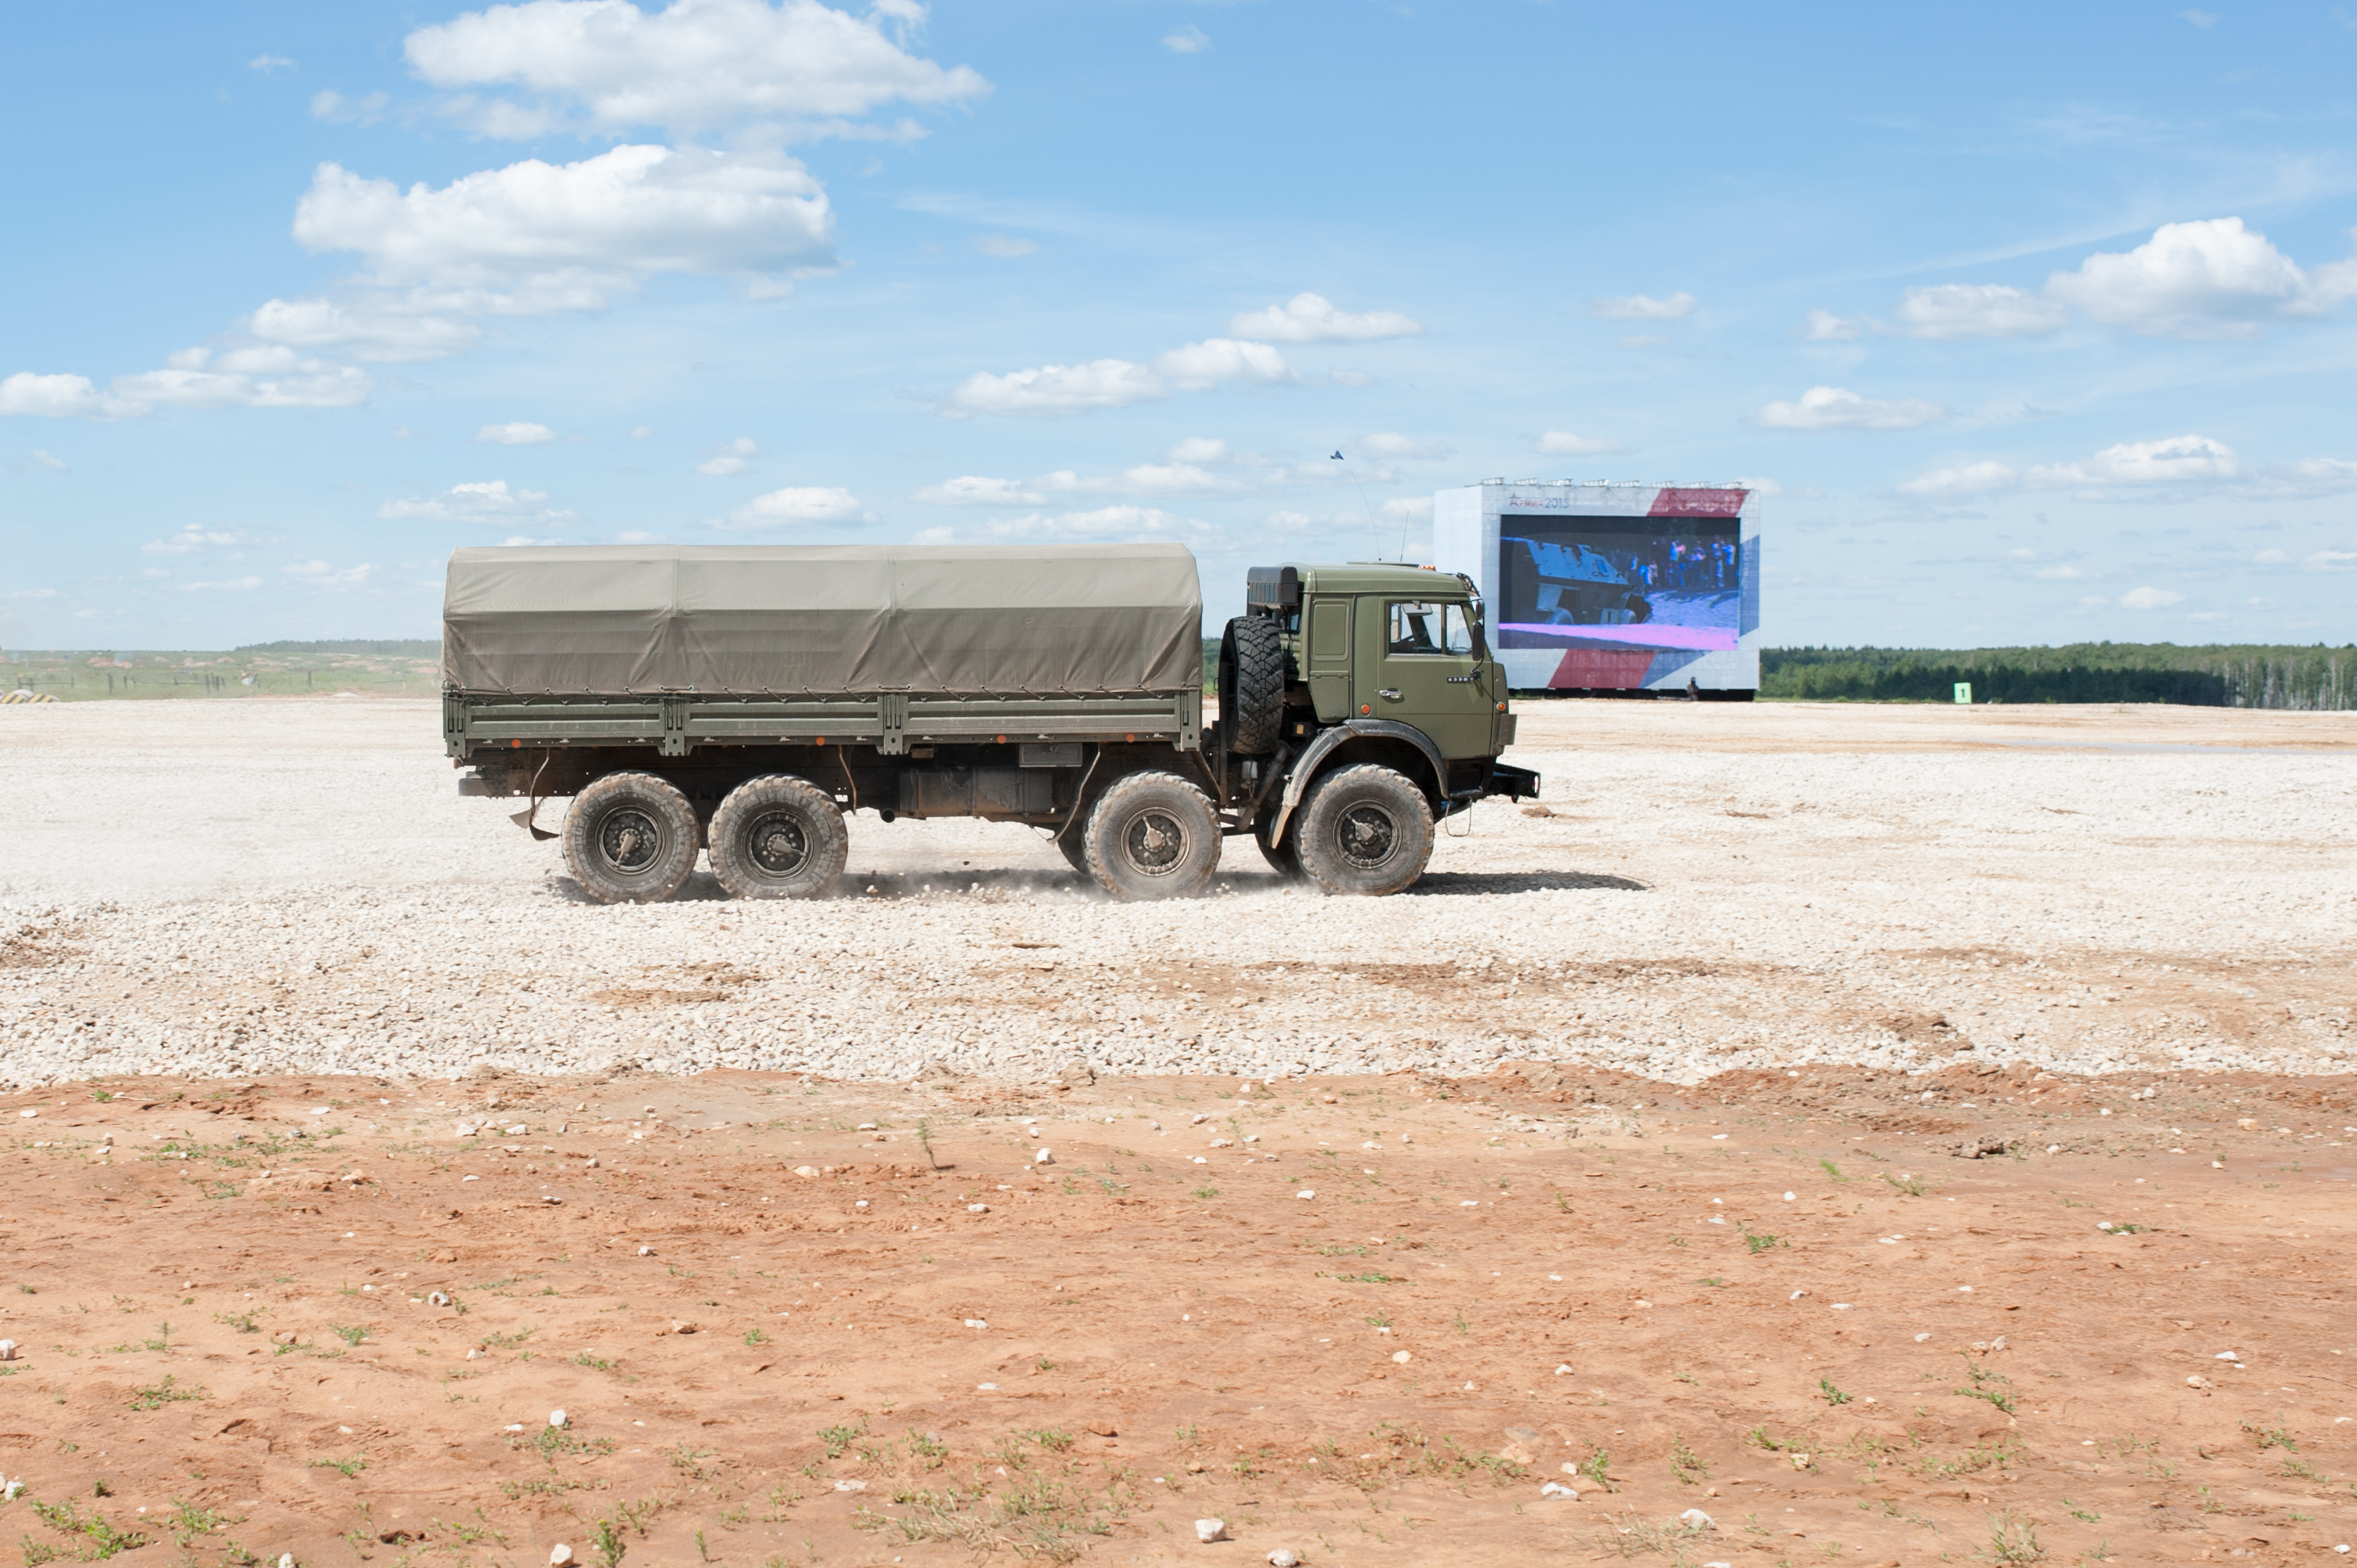 Russian Military Photos and Videos #2 - Page 37 0_c8084_1a5f15b2_orig